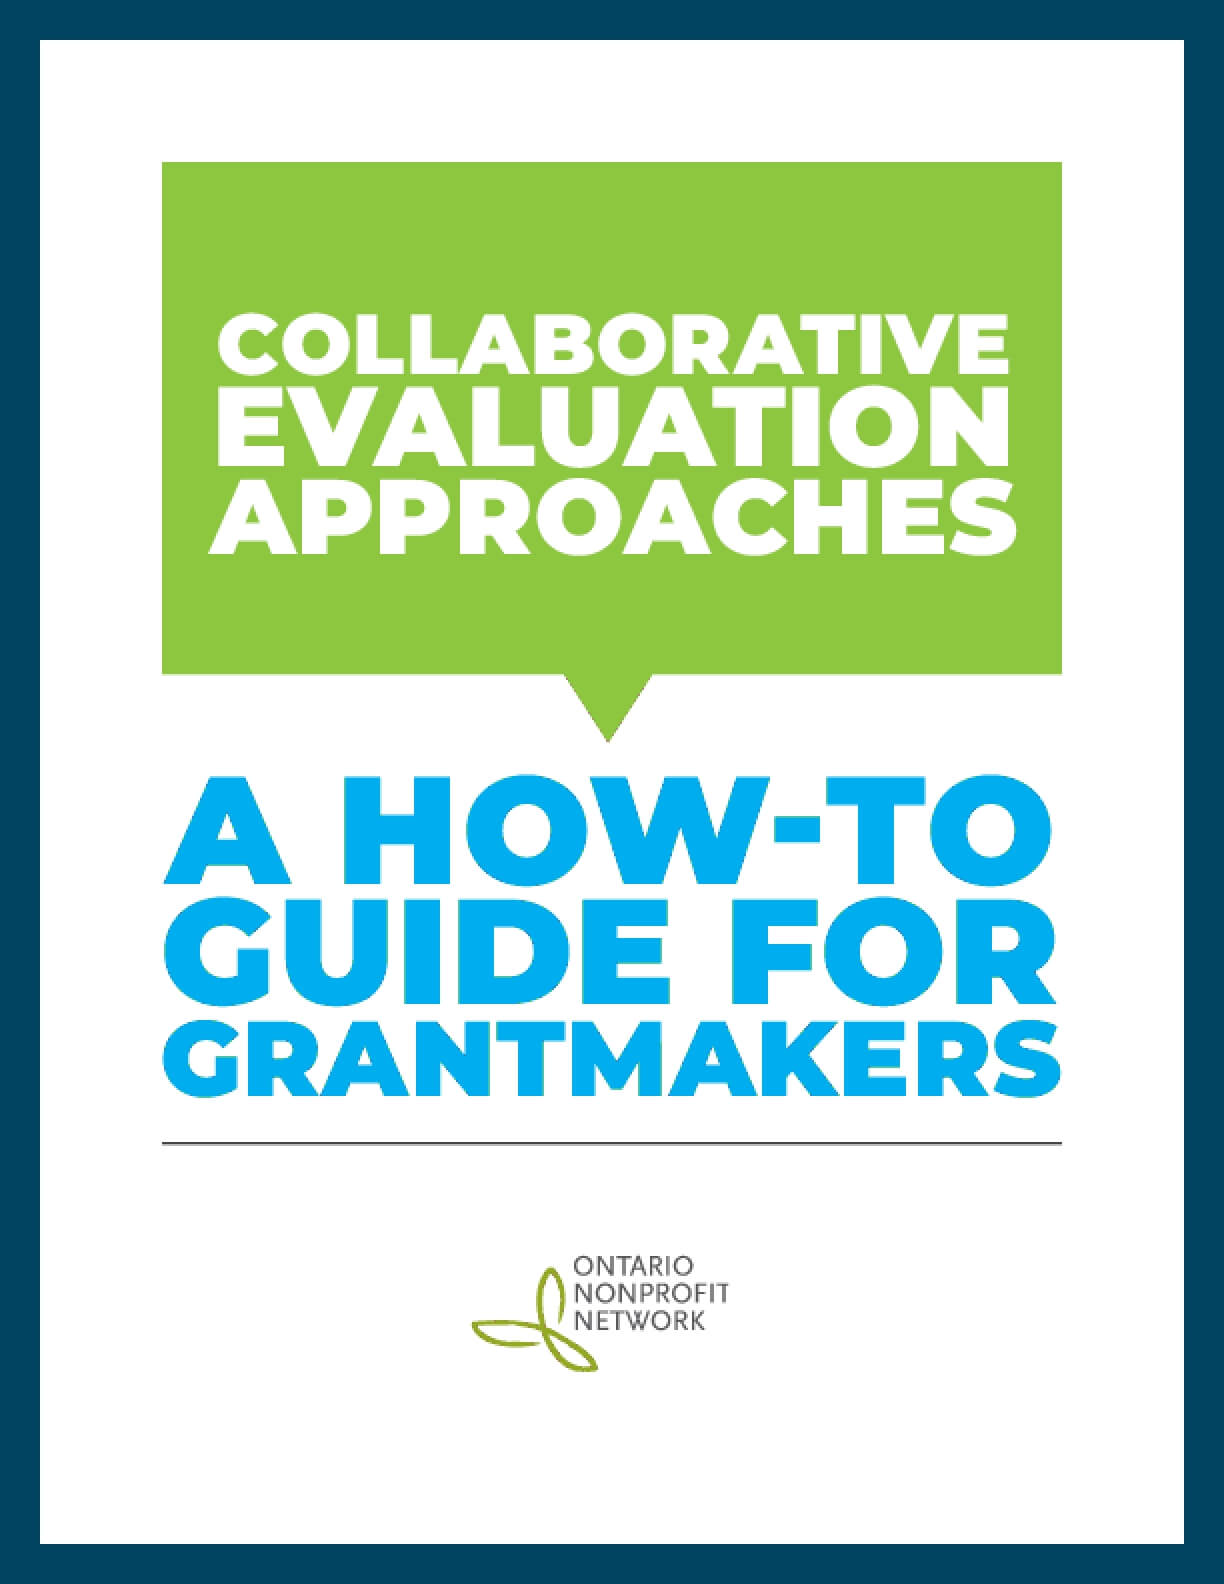 Collaborative Evaluation Approaches: A How-To Guide For Grantmakers